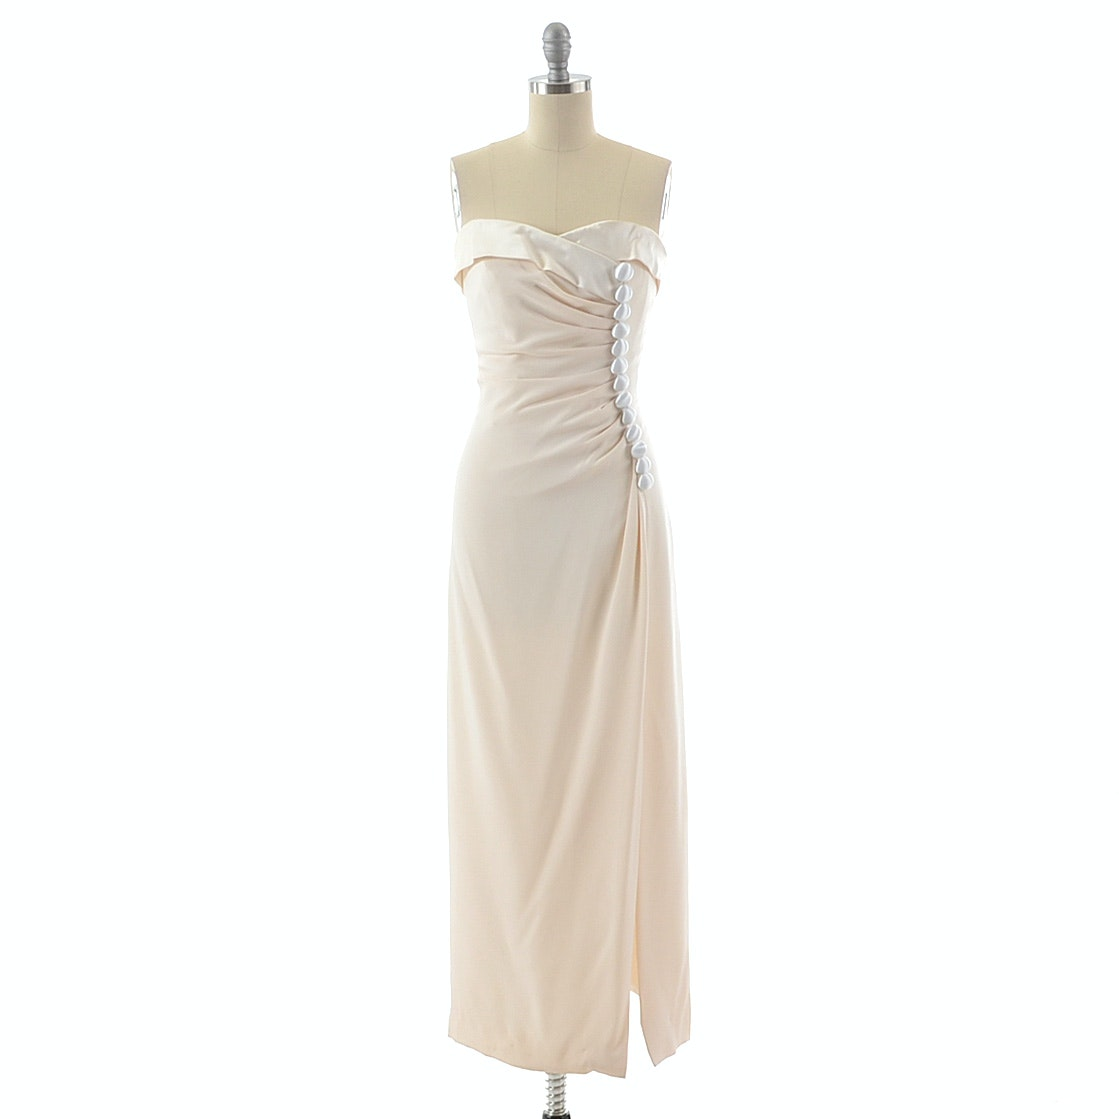 1990s Scassi Boutique Strapless Evening Dress in Ivory Silk